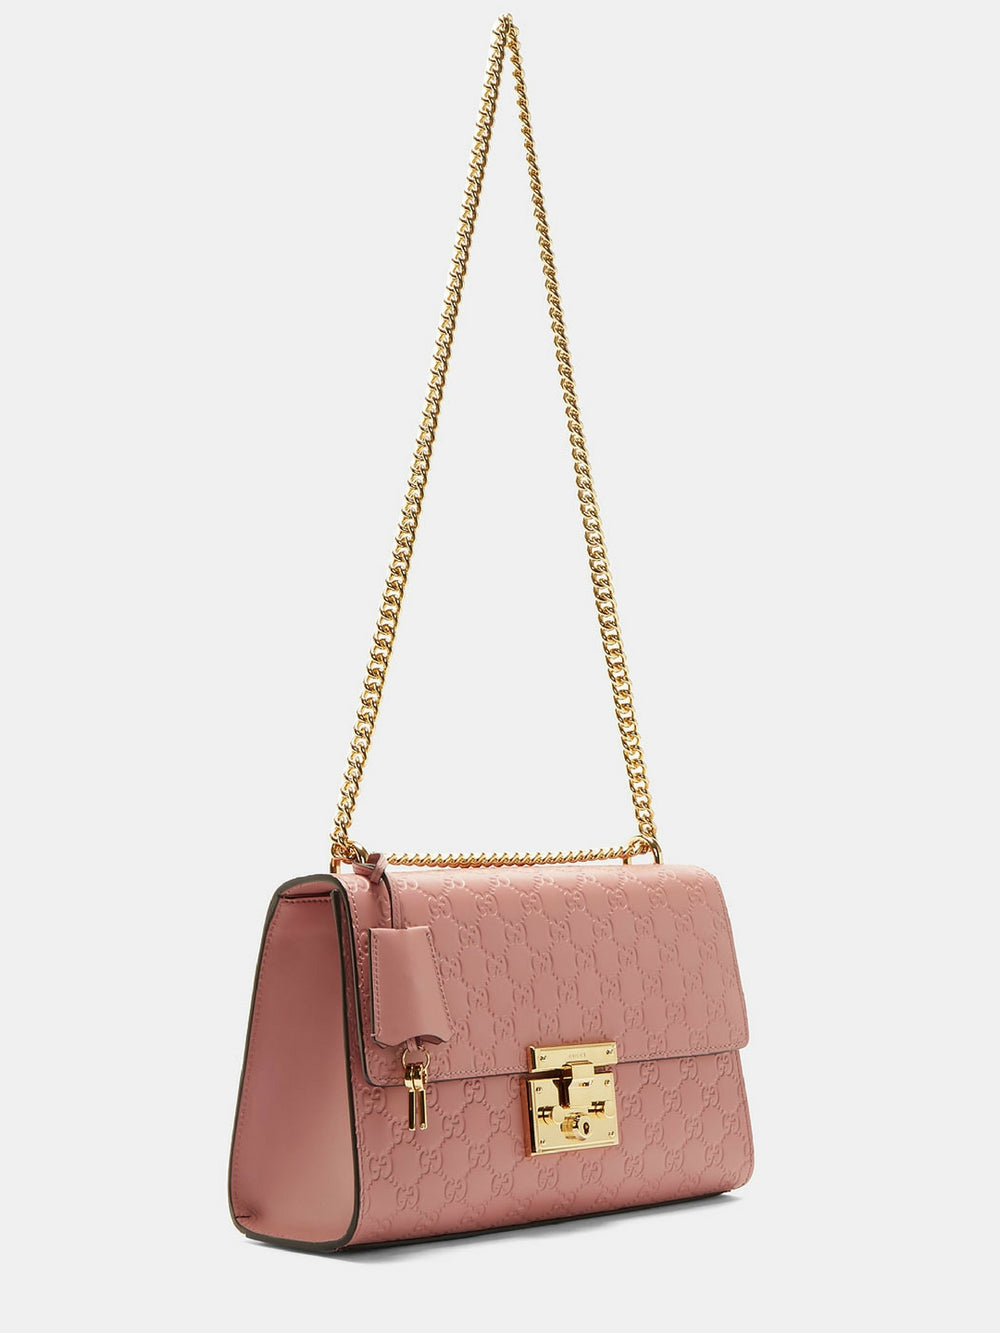 gucci-padlock-signature-monogram-shoulder-bag-pink